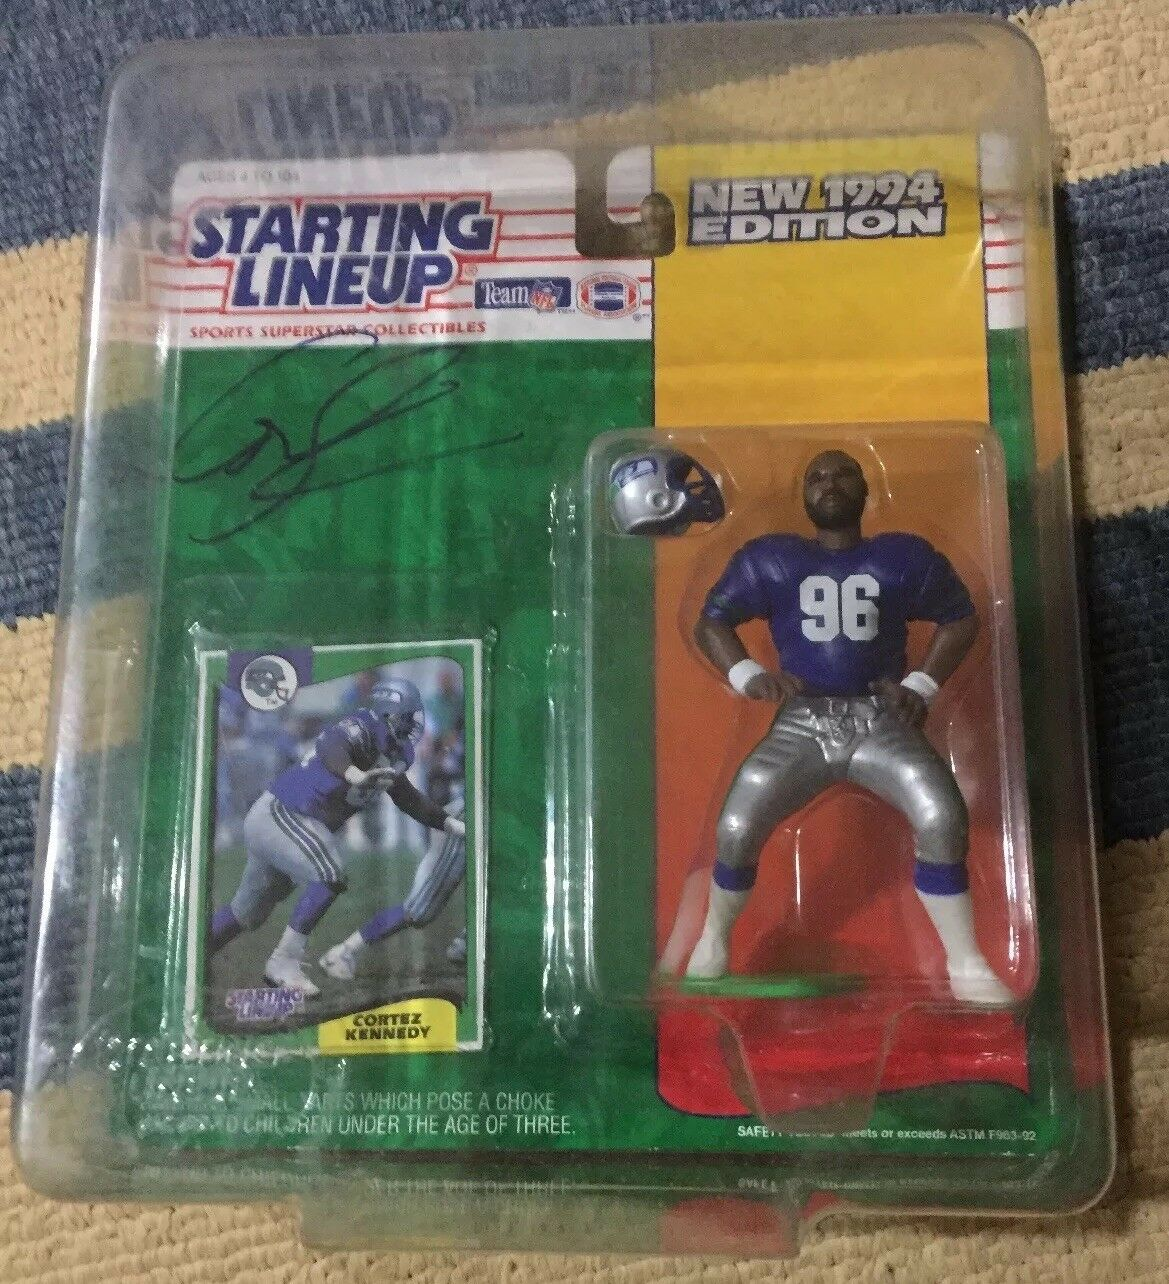 Cortez Kennedy Signed Autographed 1994 estrellating Lineup..Seahawks. ceased..HOF